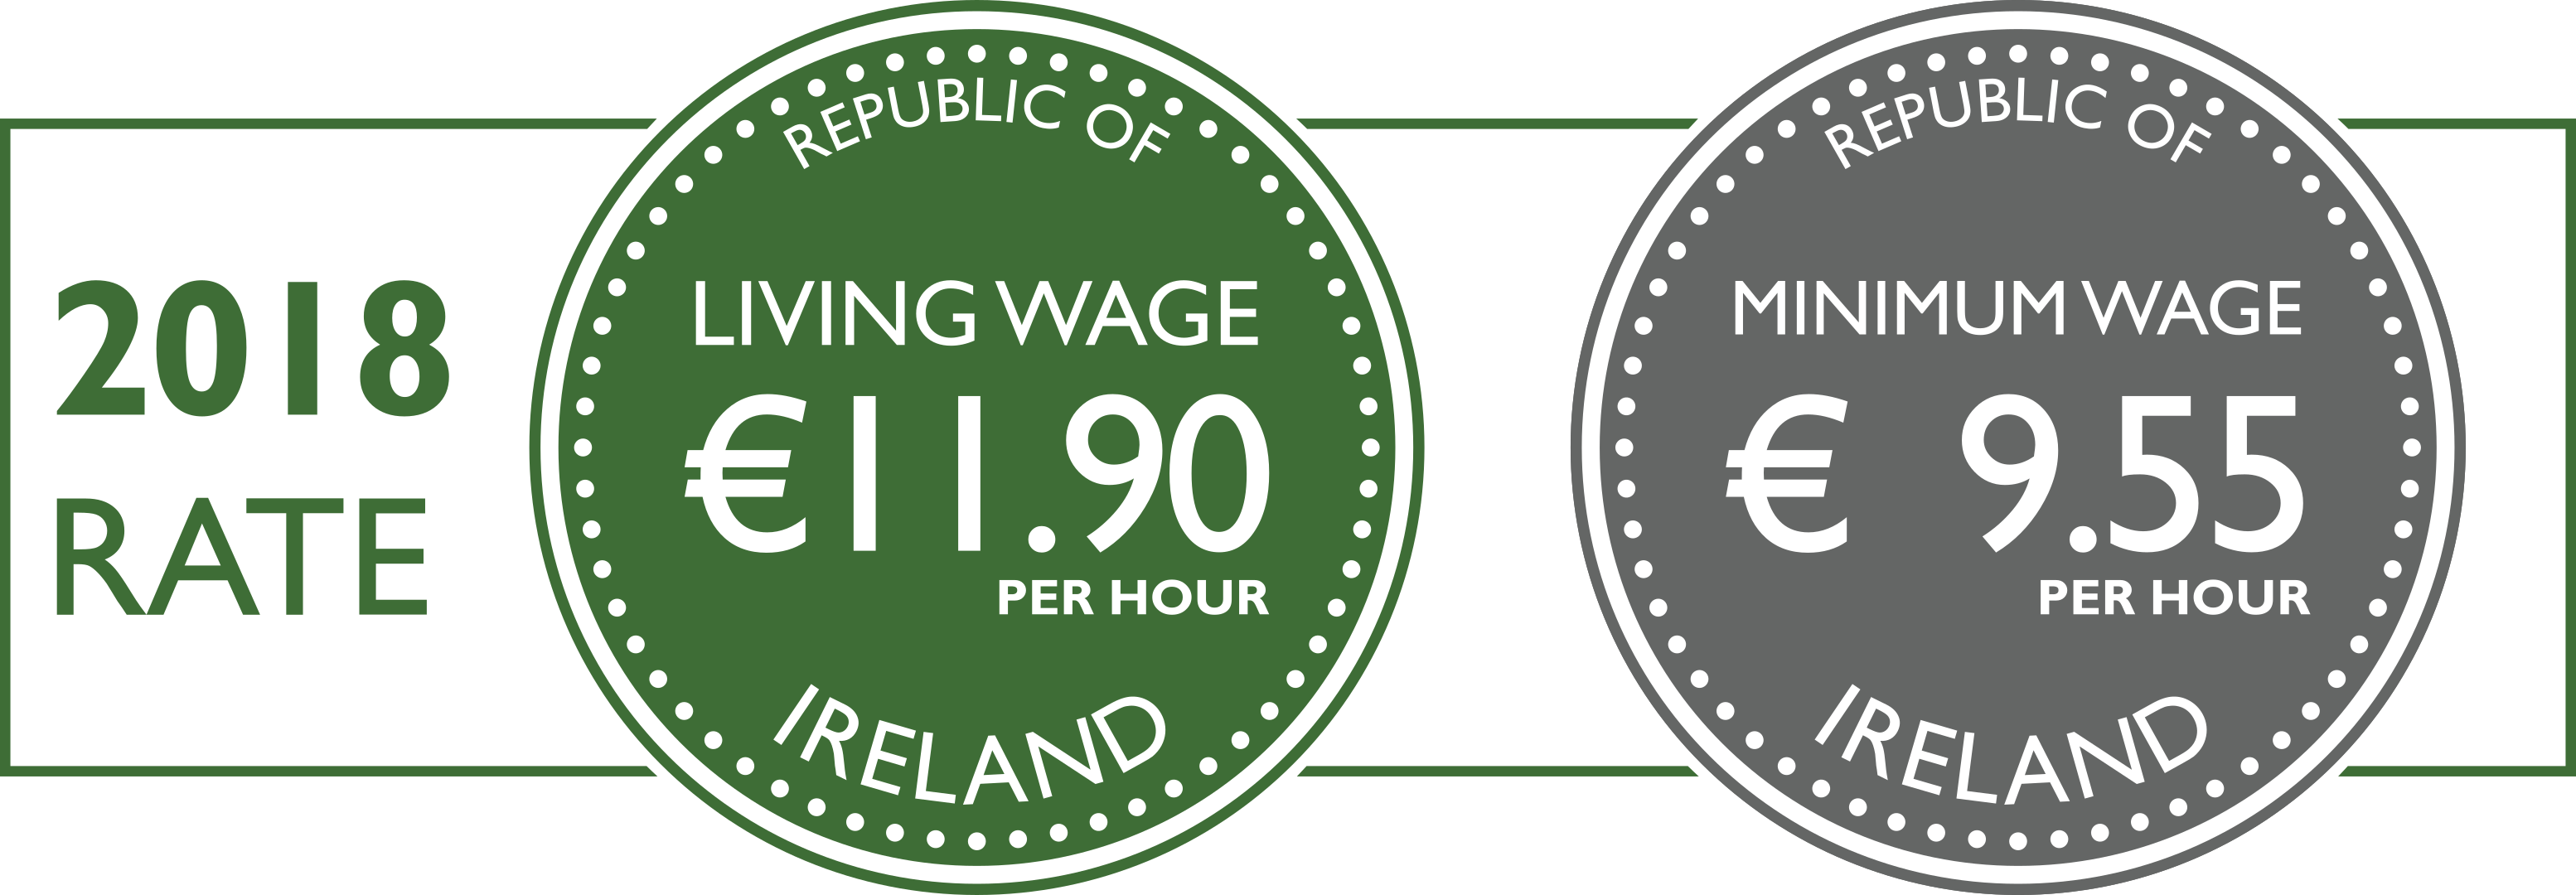 Republic of Ireland - Living Wage €11.90 per hour